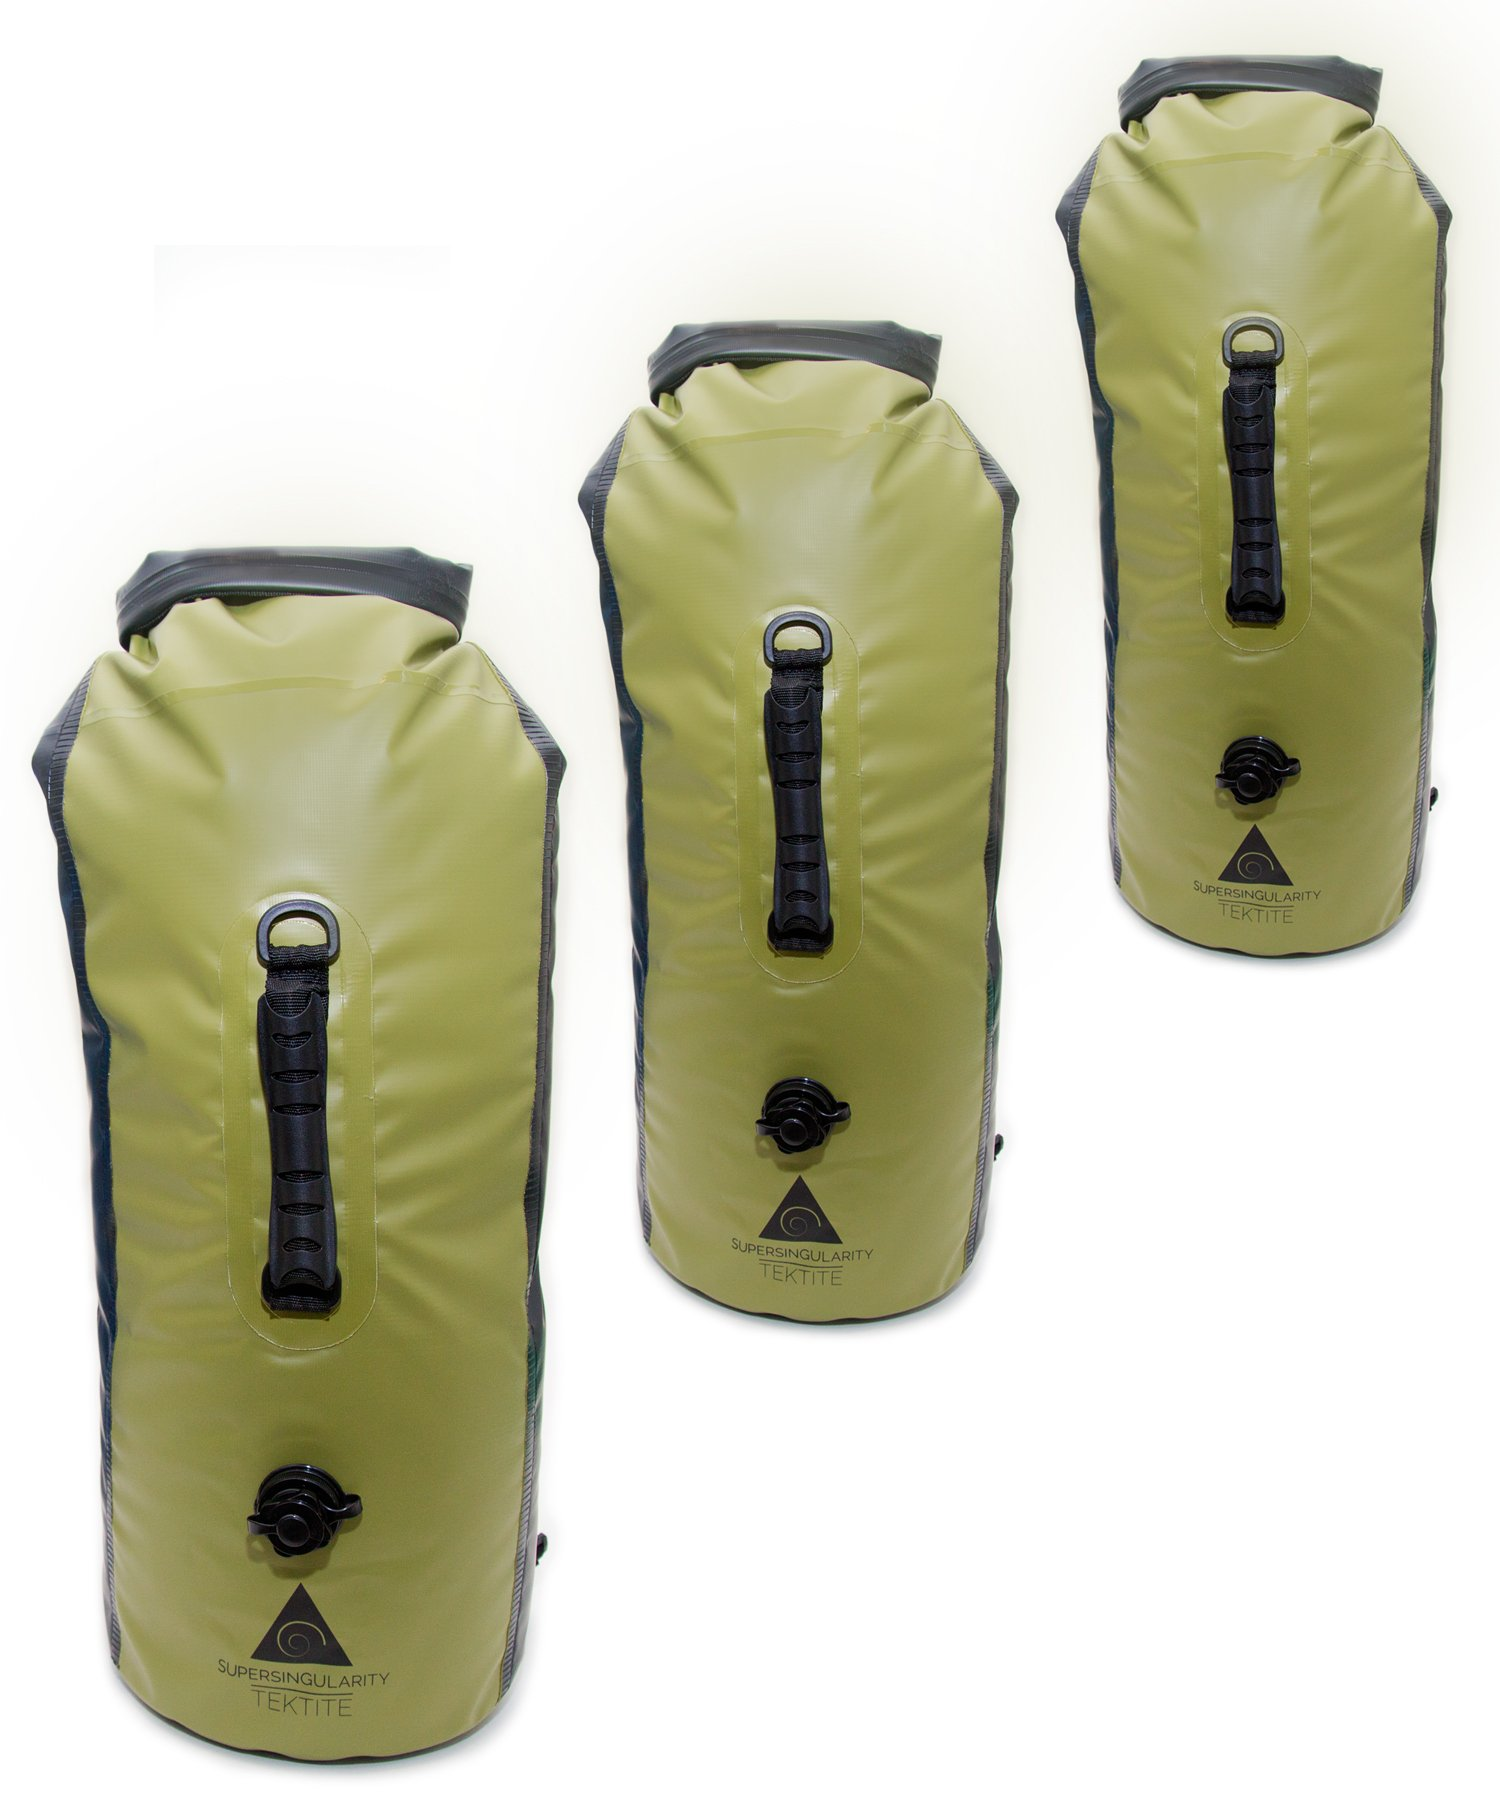 SUPERSINGULARITY 30L Dry Bag (3 Pack) Waterproof Backpack Compression Sack - Green & Black by SUPERSINGULARITY